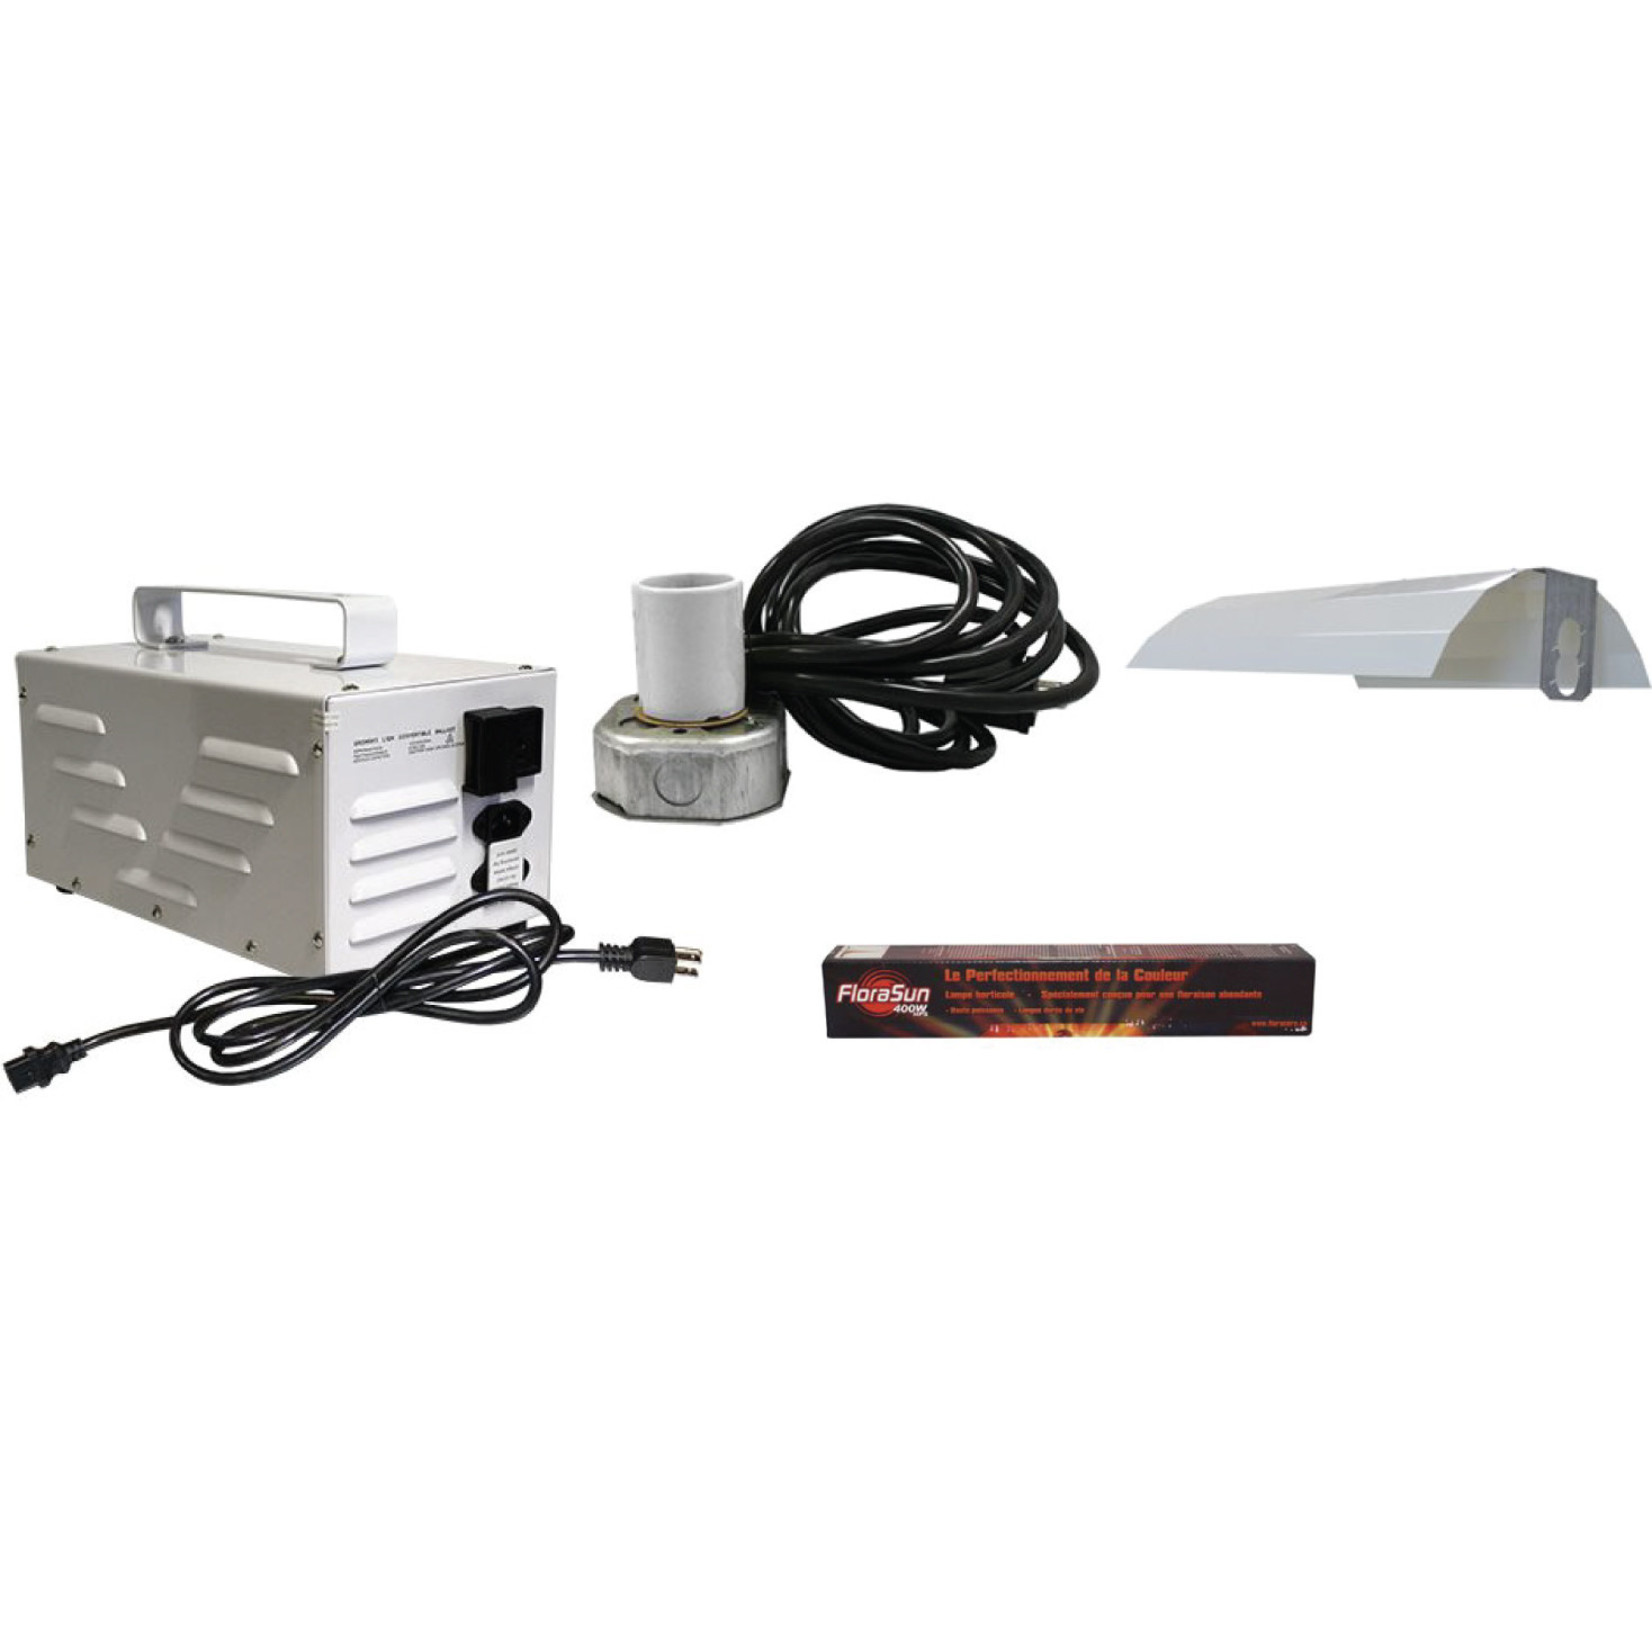 600w Original Ballast Kit